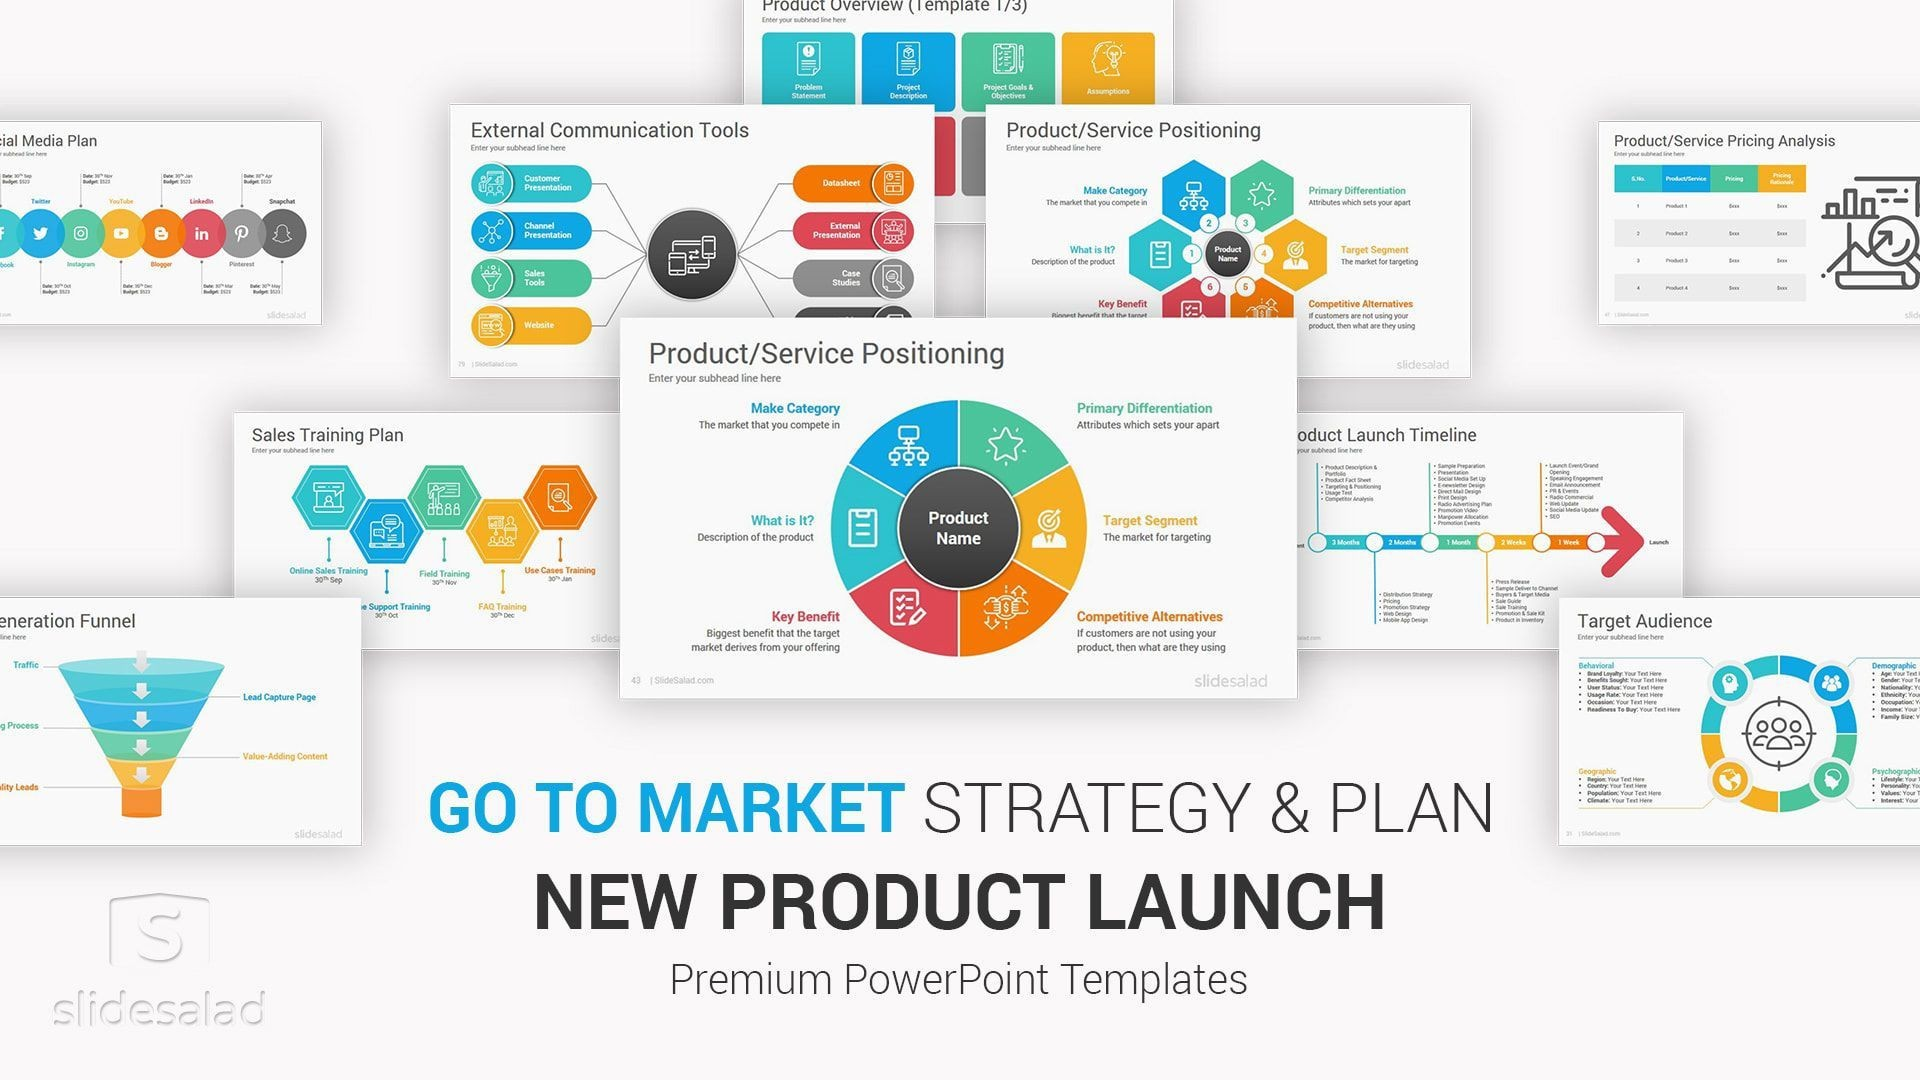 007 Amazing Product Launch Plan Template Free Highest Quality  Powerpoint Ppt Excel1920